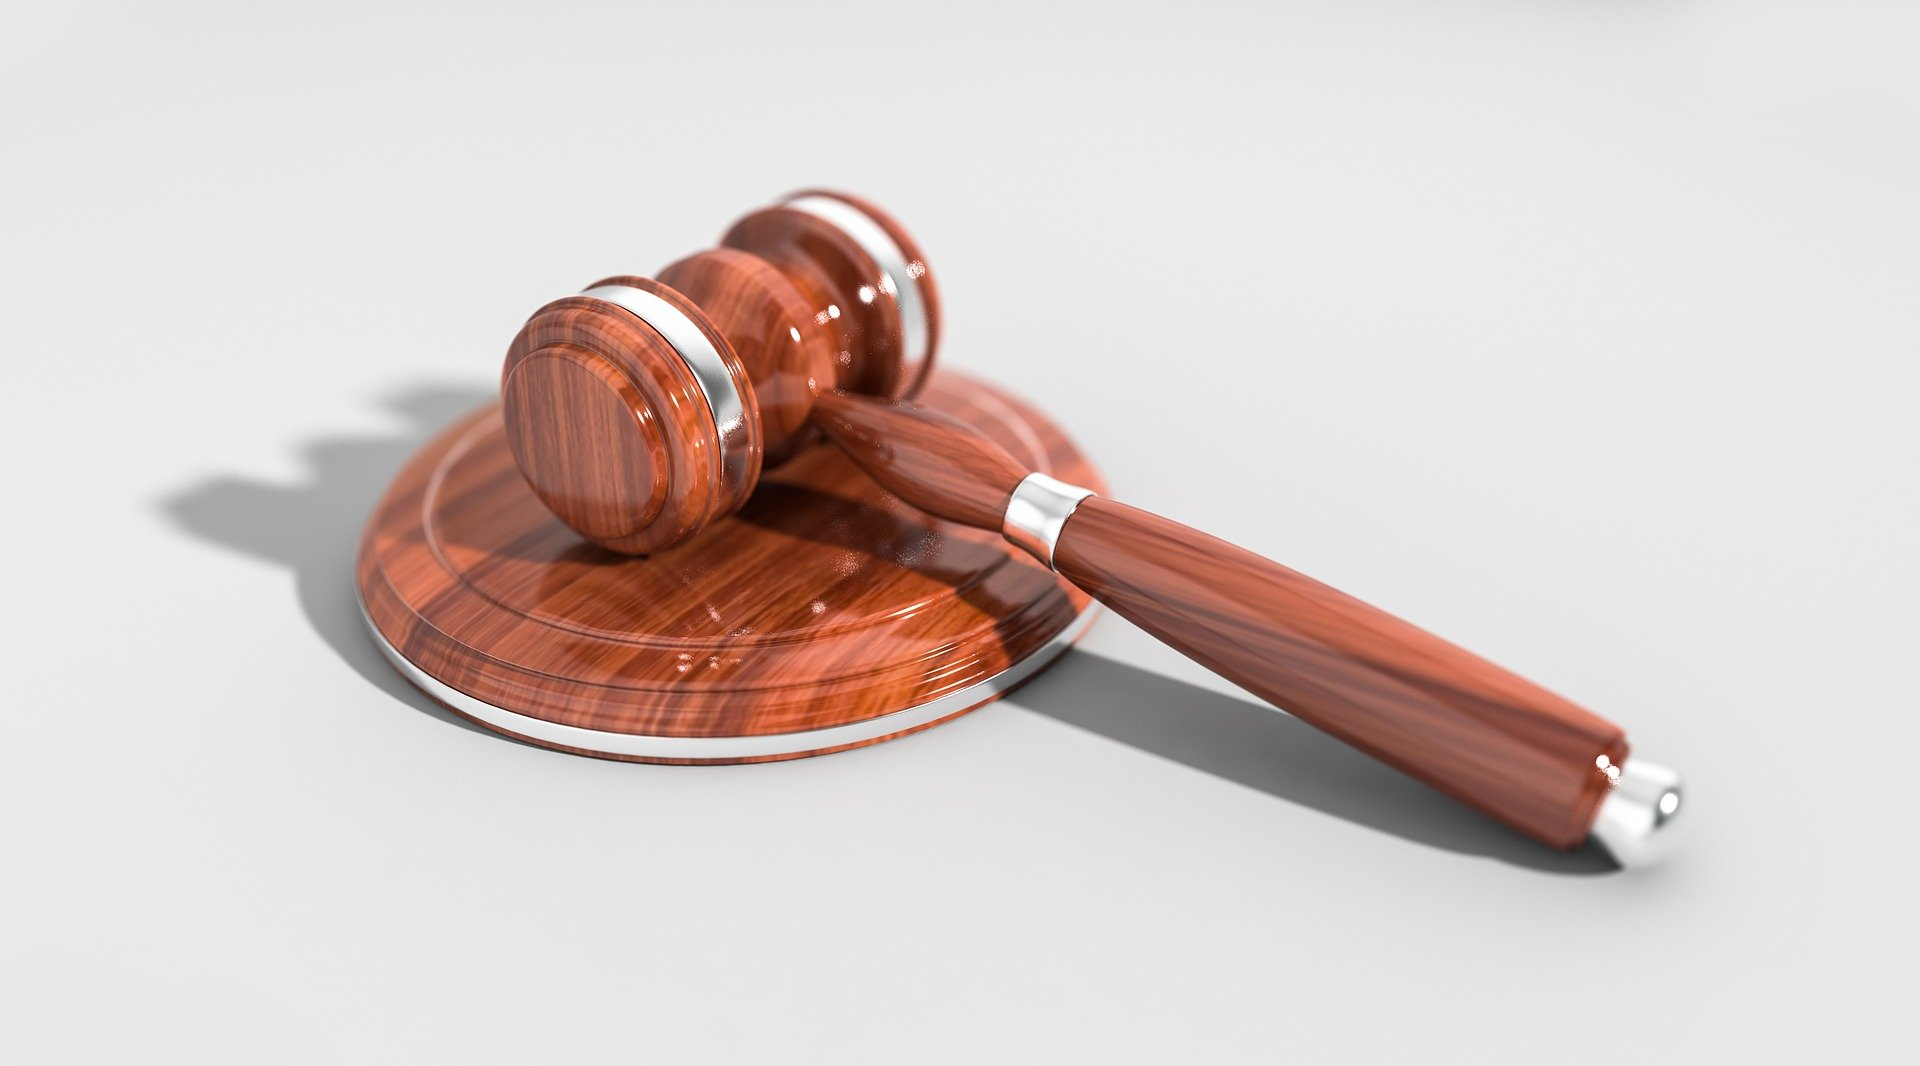 What Are the Legal Challenges That Crypto Faces and the Way Out?